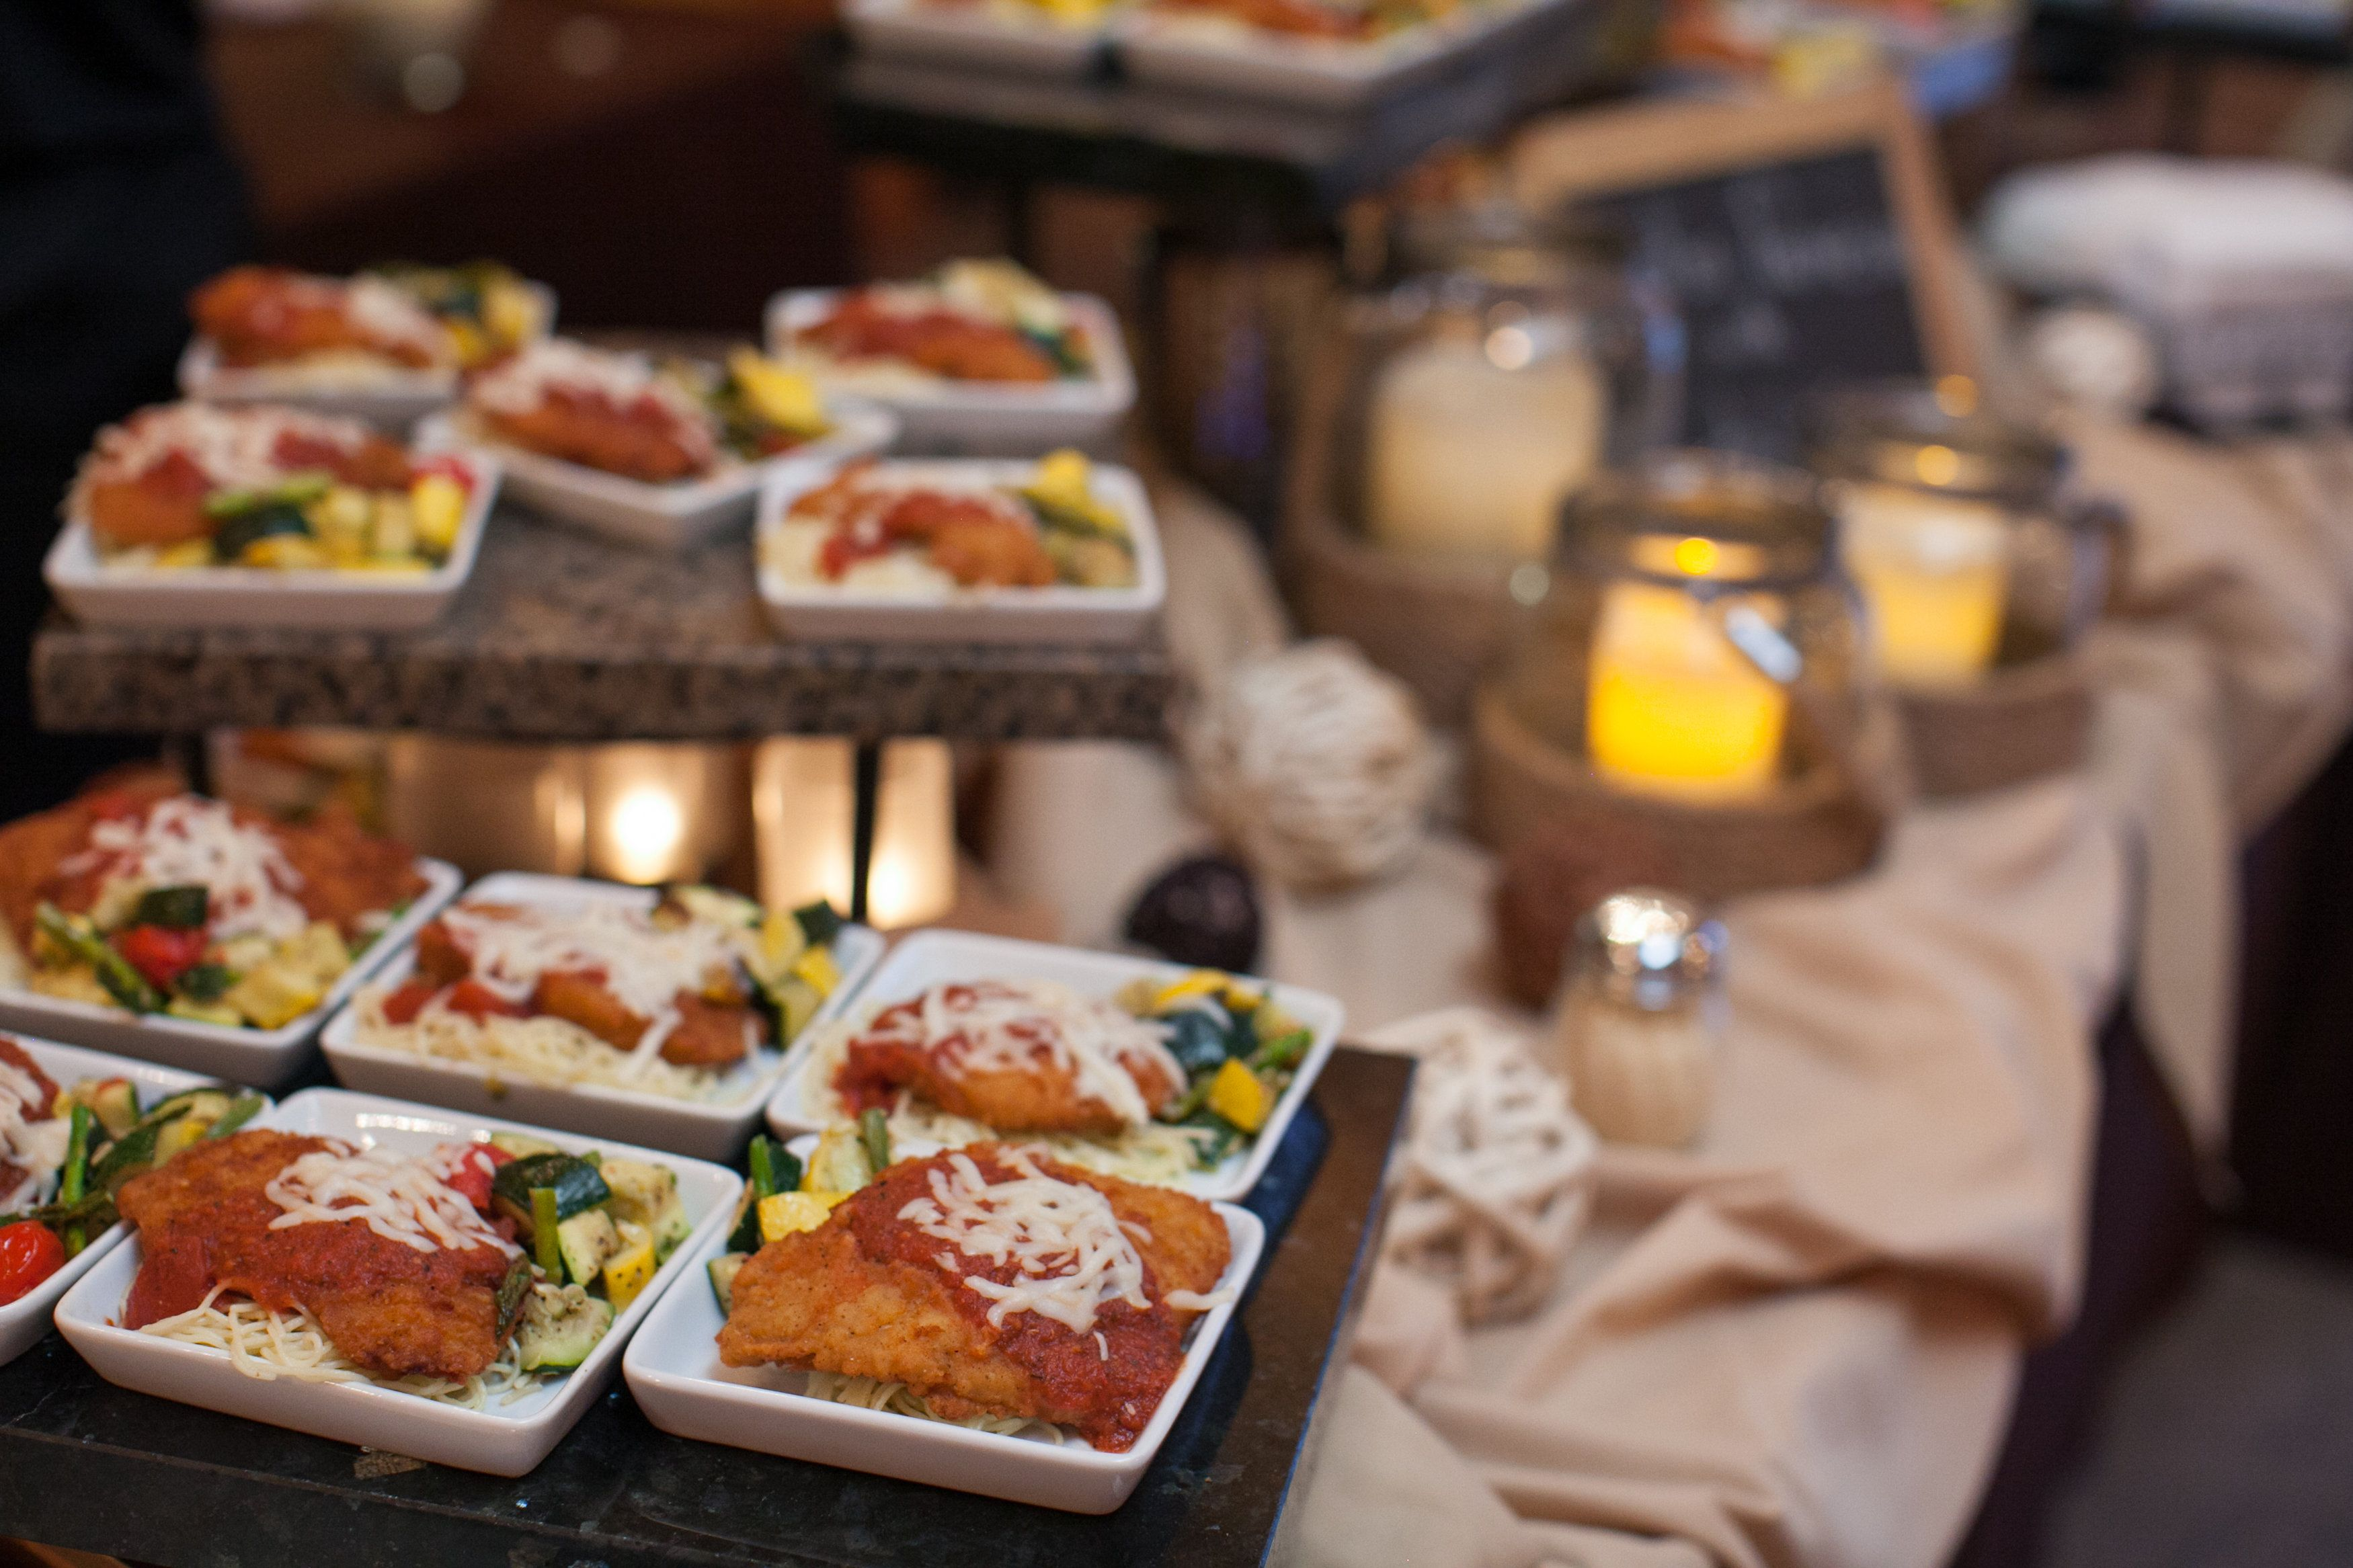 Chicken Parmesan And Roasted Veggie Plate Photo By Abigail Malone Wedding Weddingfood